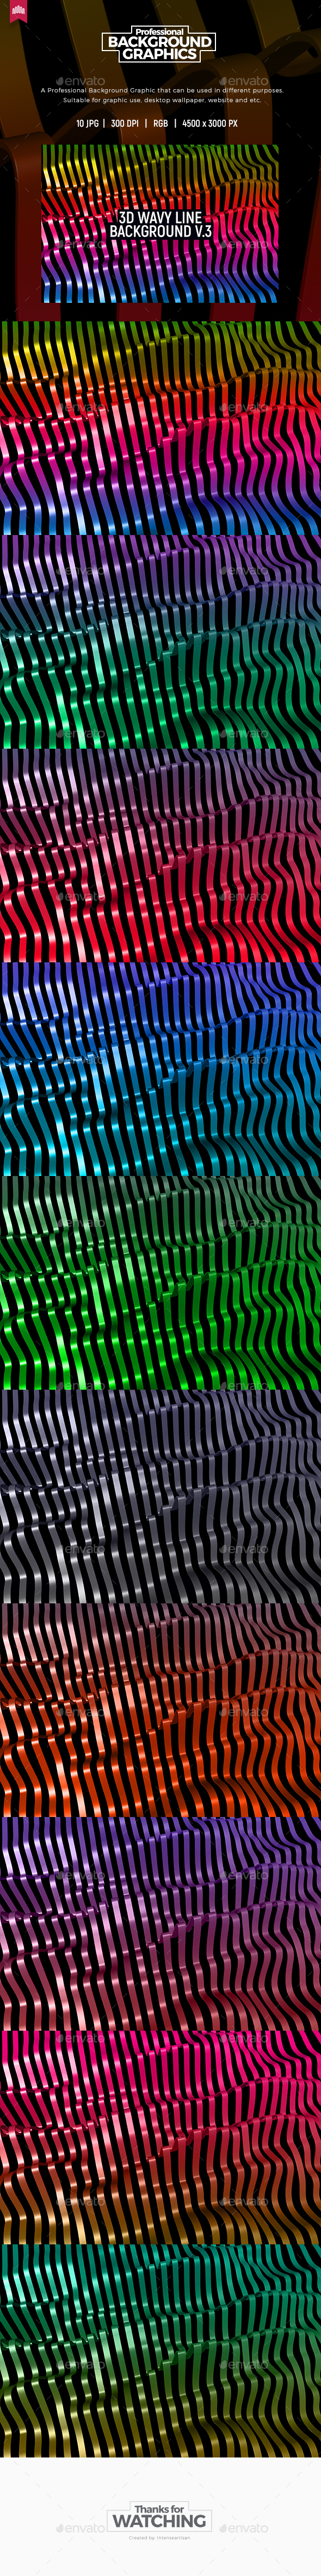 3D Wavy Line Background V.3 - 3D Backgrounds